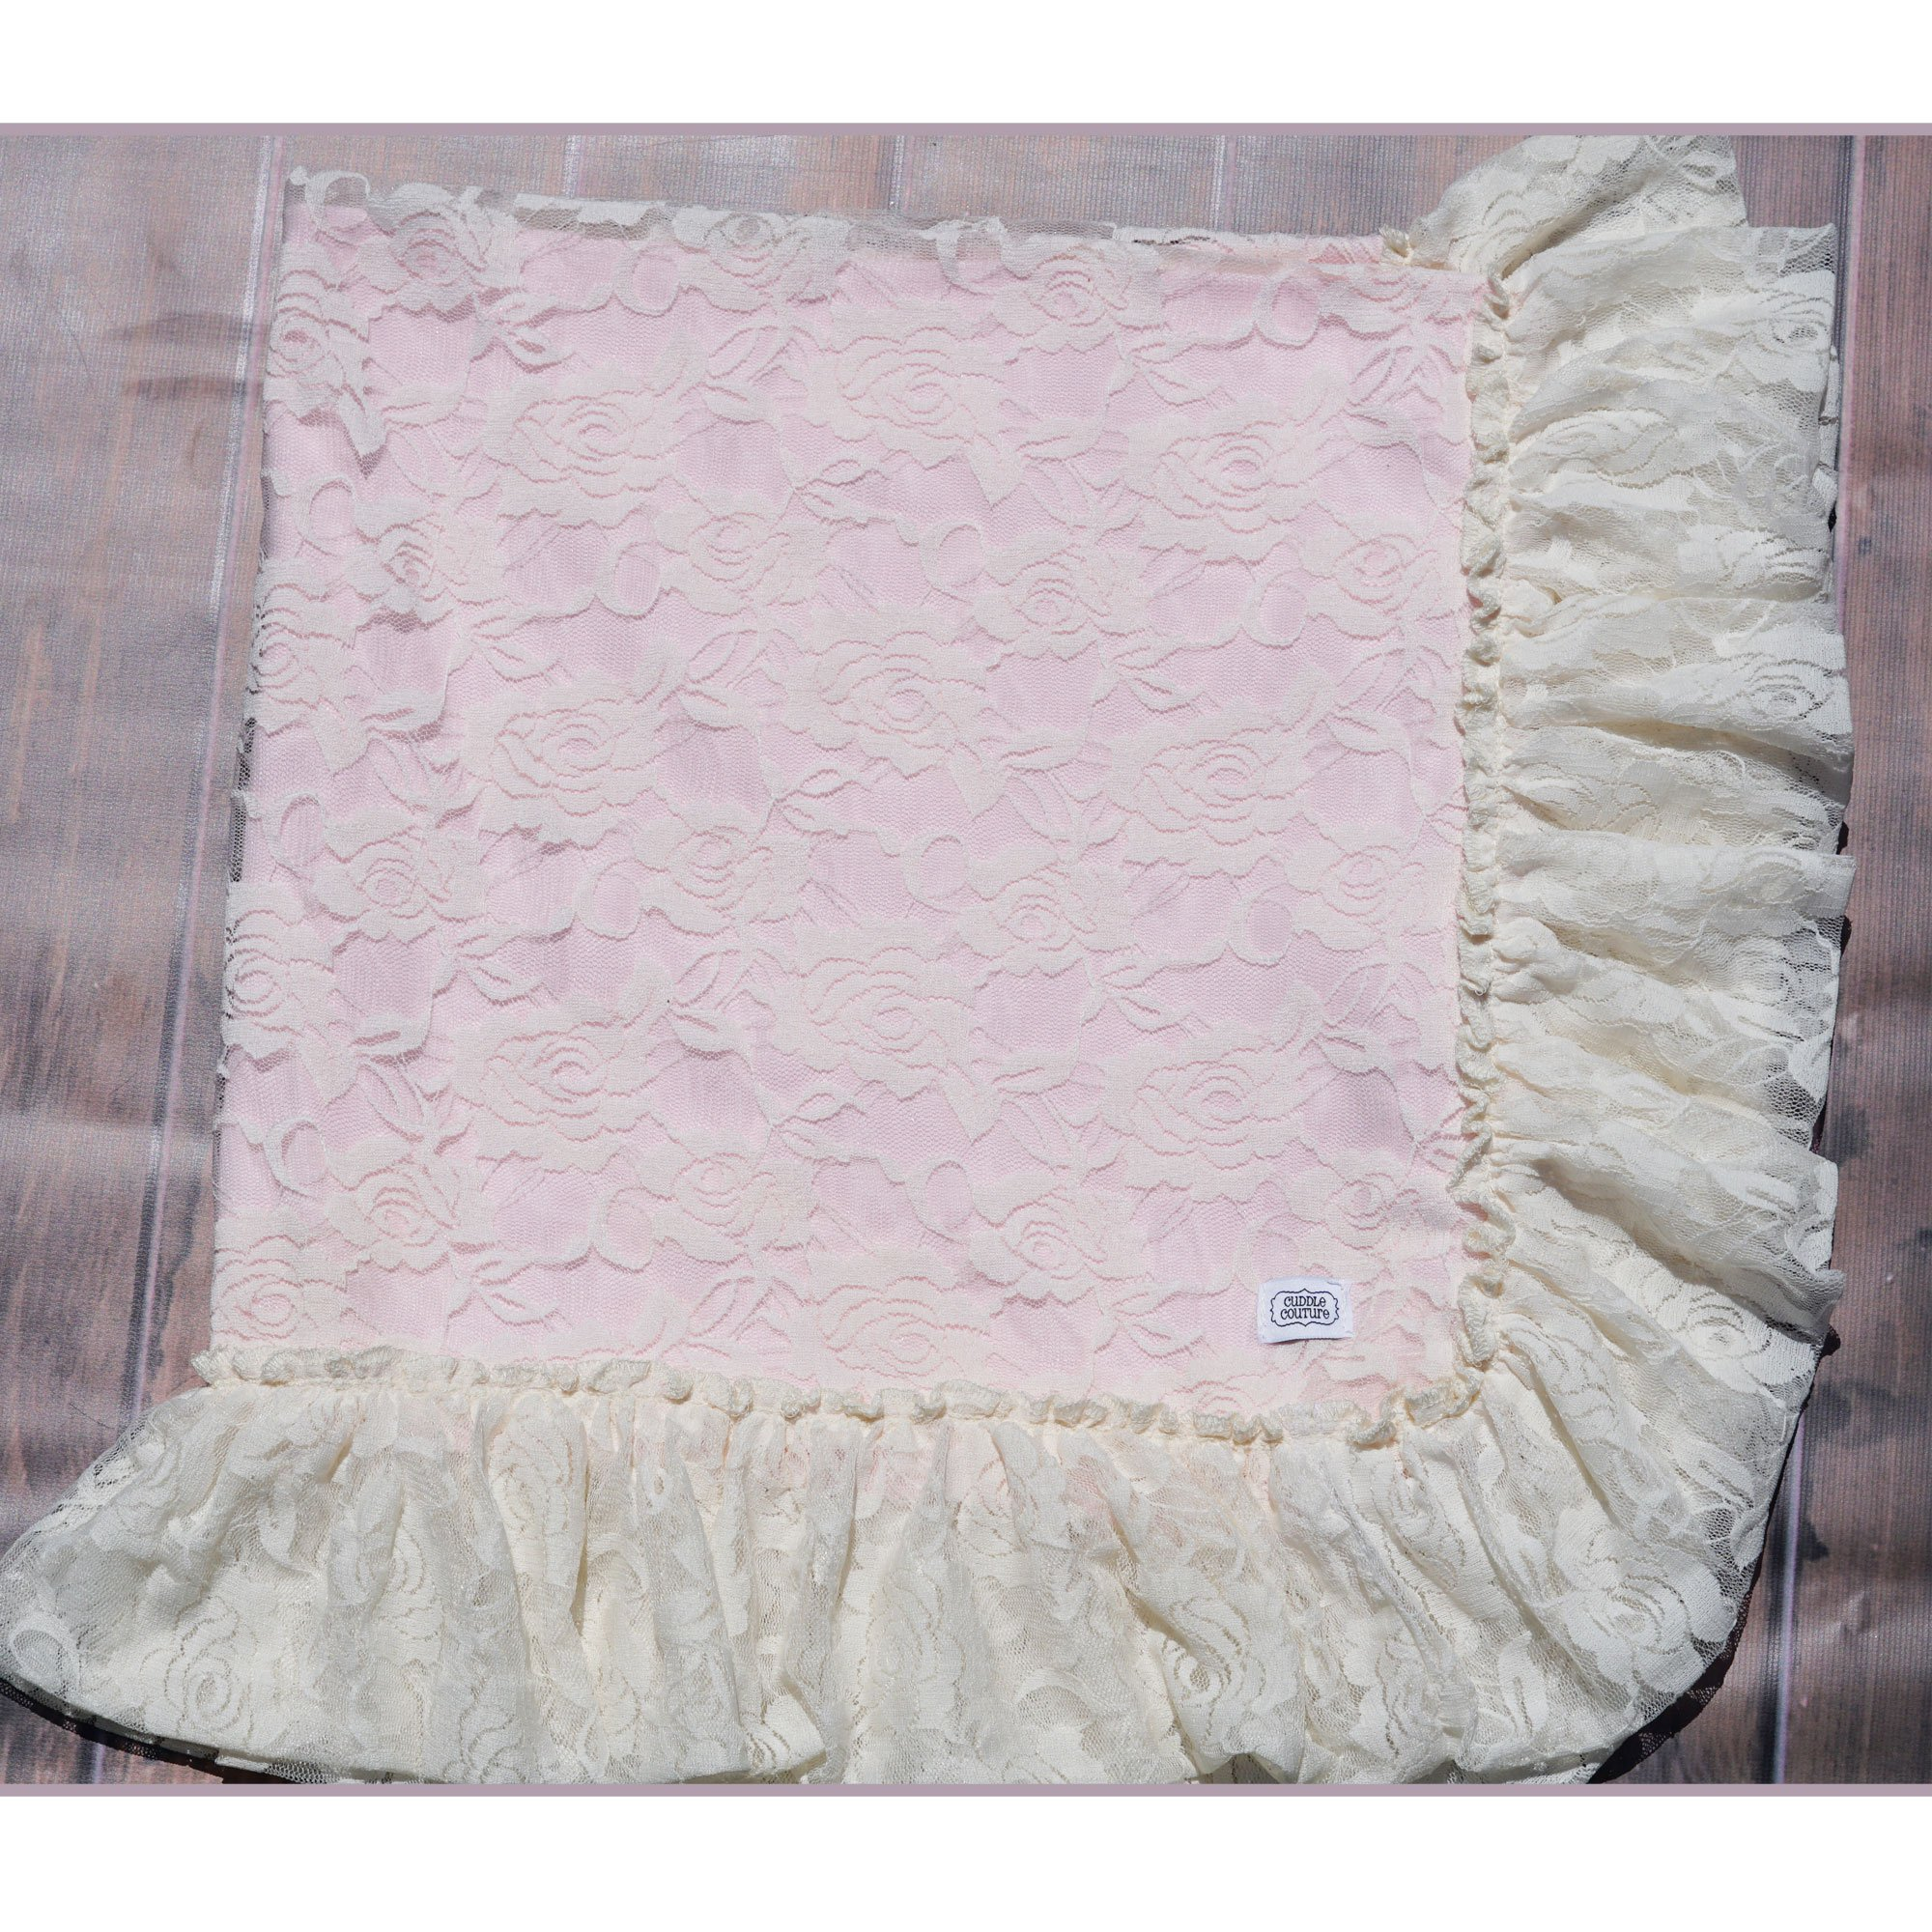 Cuddle Couture Vintage Lace Pink And Ivory Blanket